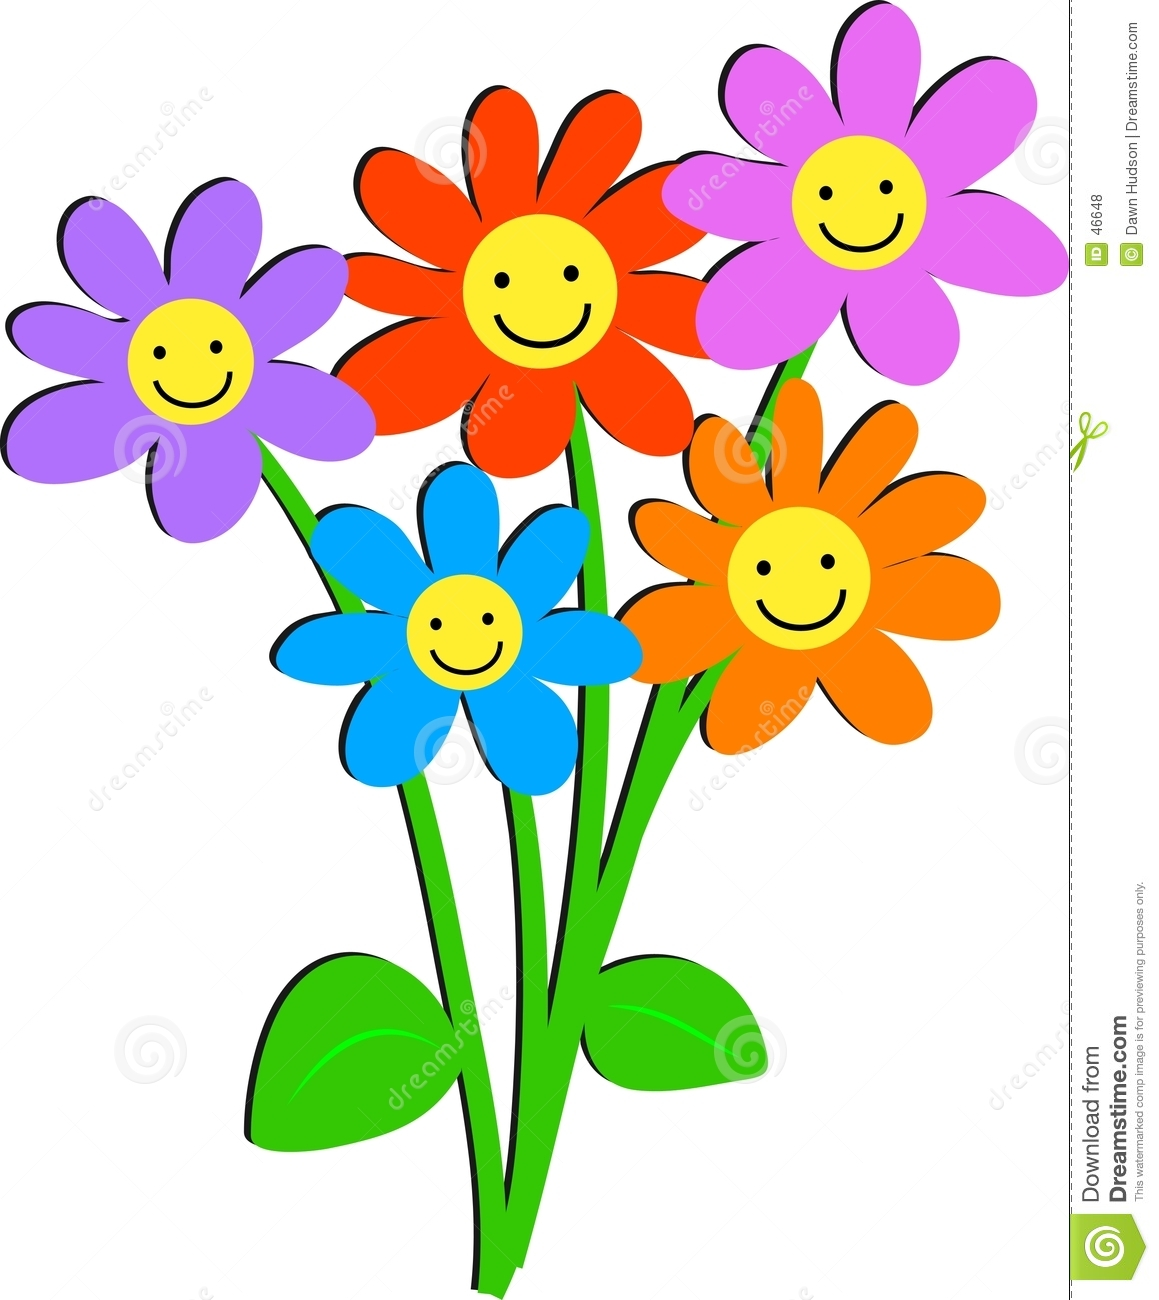 birthday flowers clipart ; smiley-face-flower-clipart-happy-flowers-46648